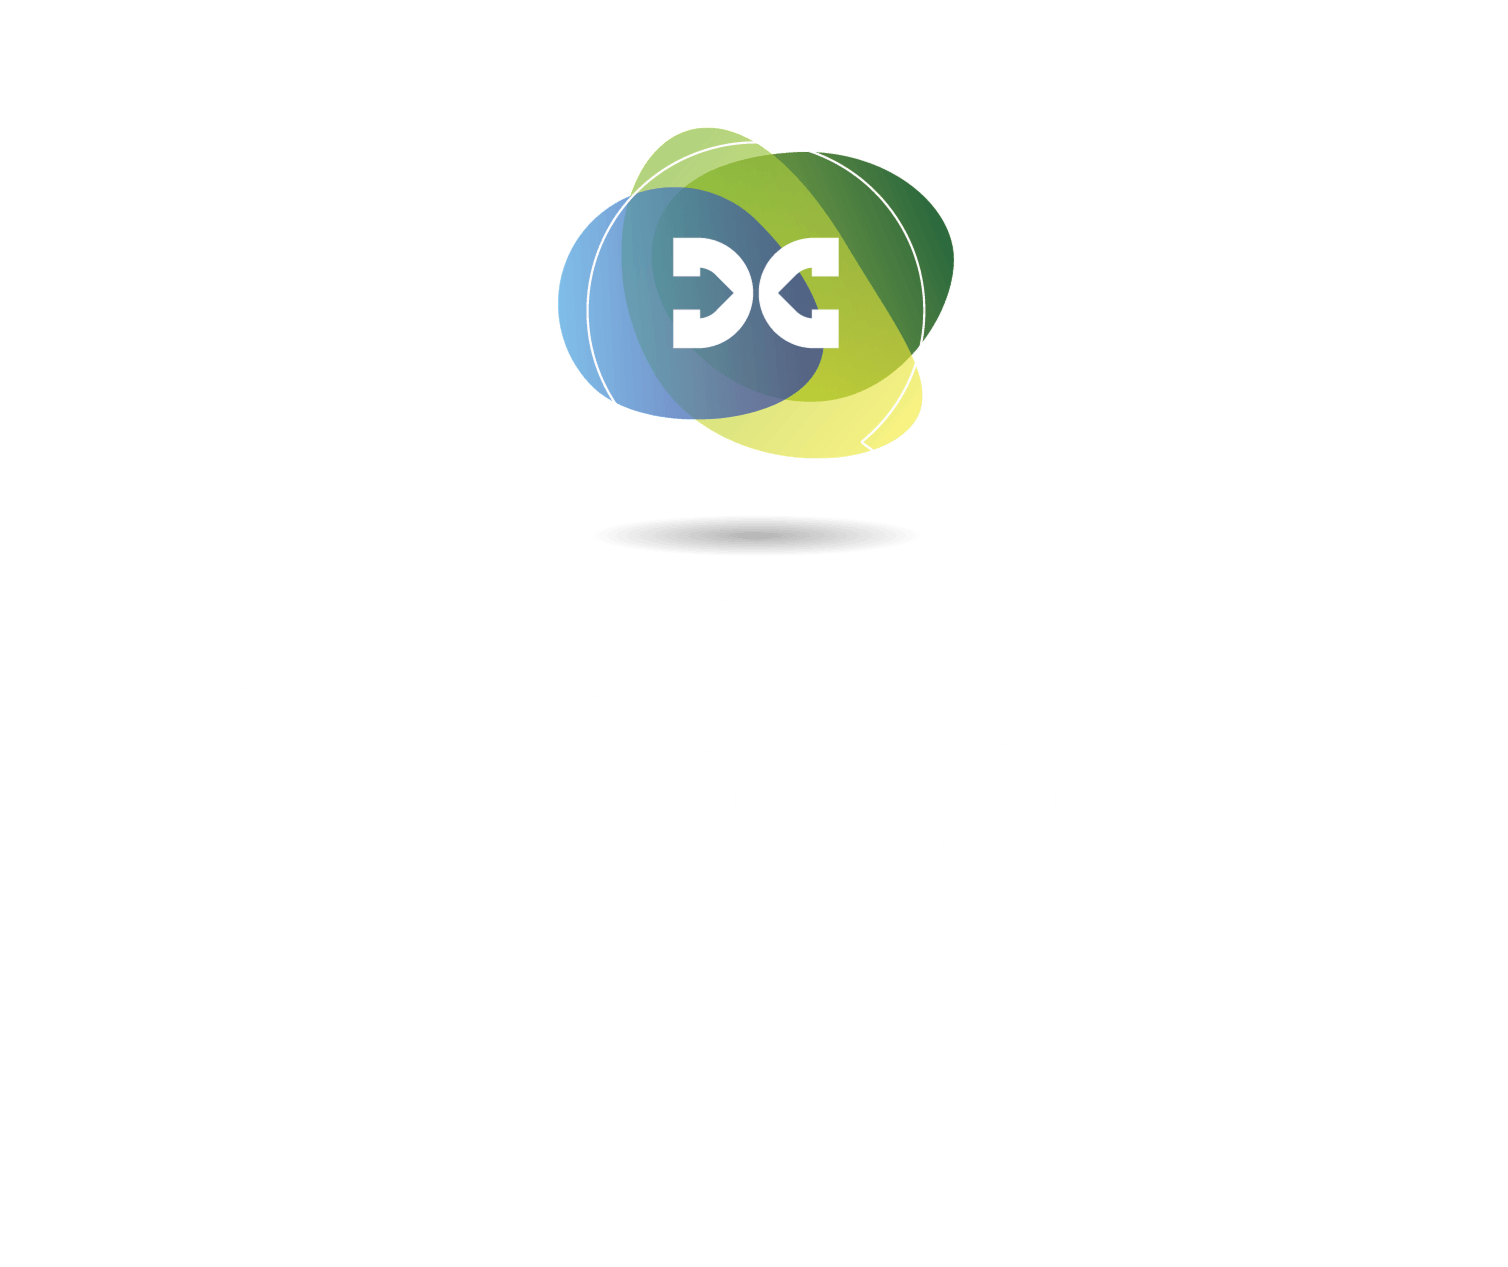 Data Centre World